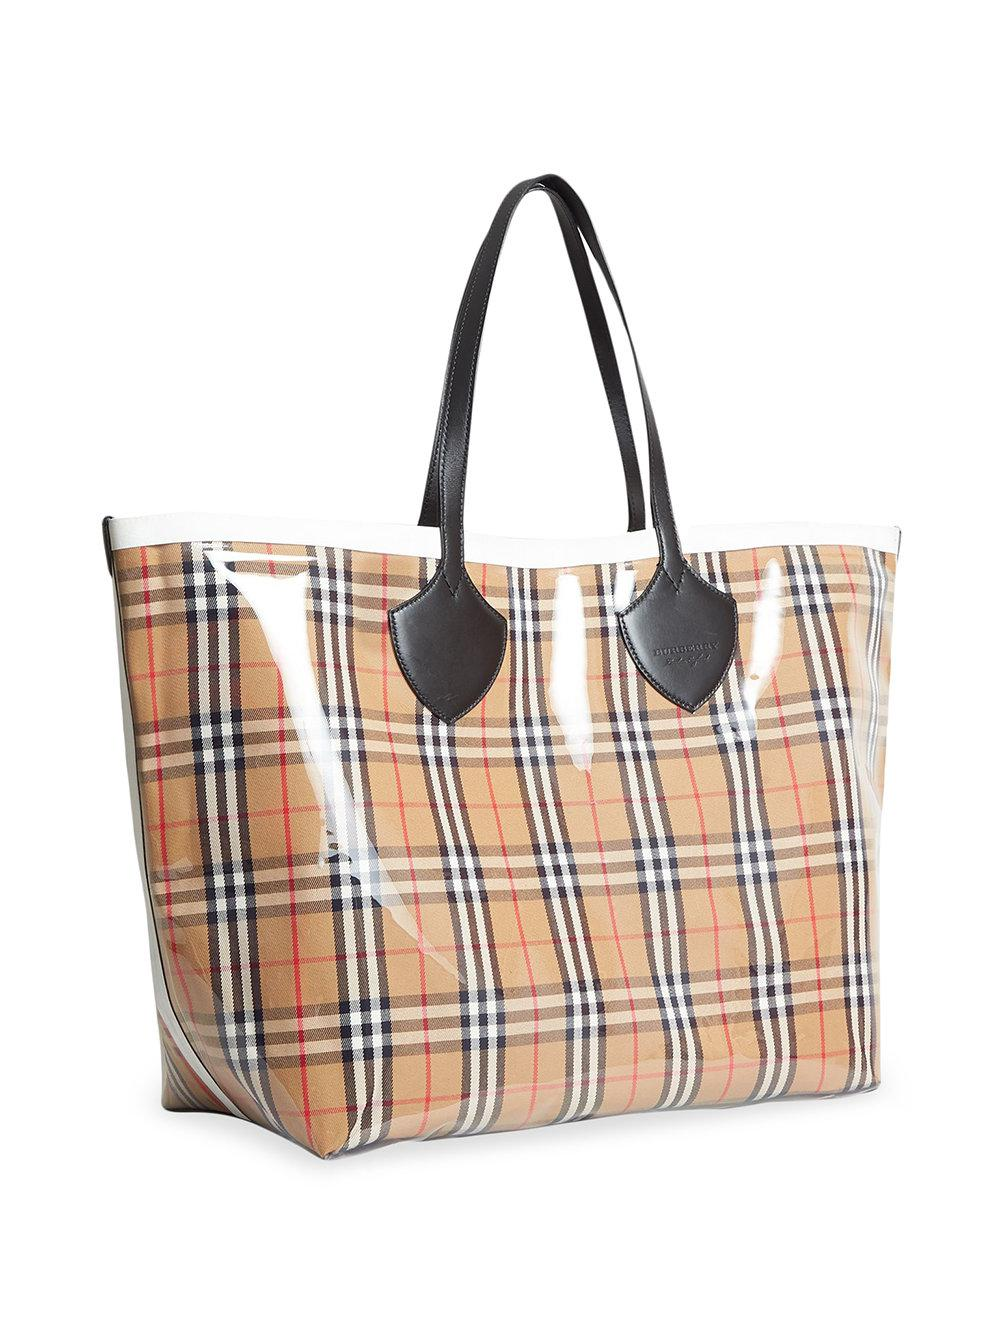 5bb25b746bce Lyst - Burberry The Giant Reversible Tote In Plastic And Vintage Check